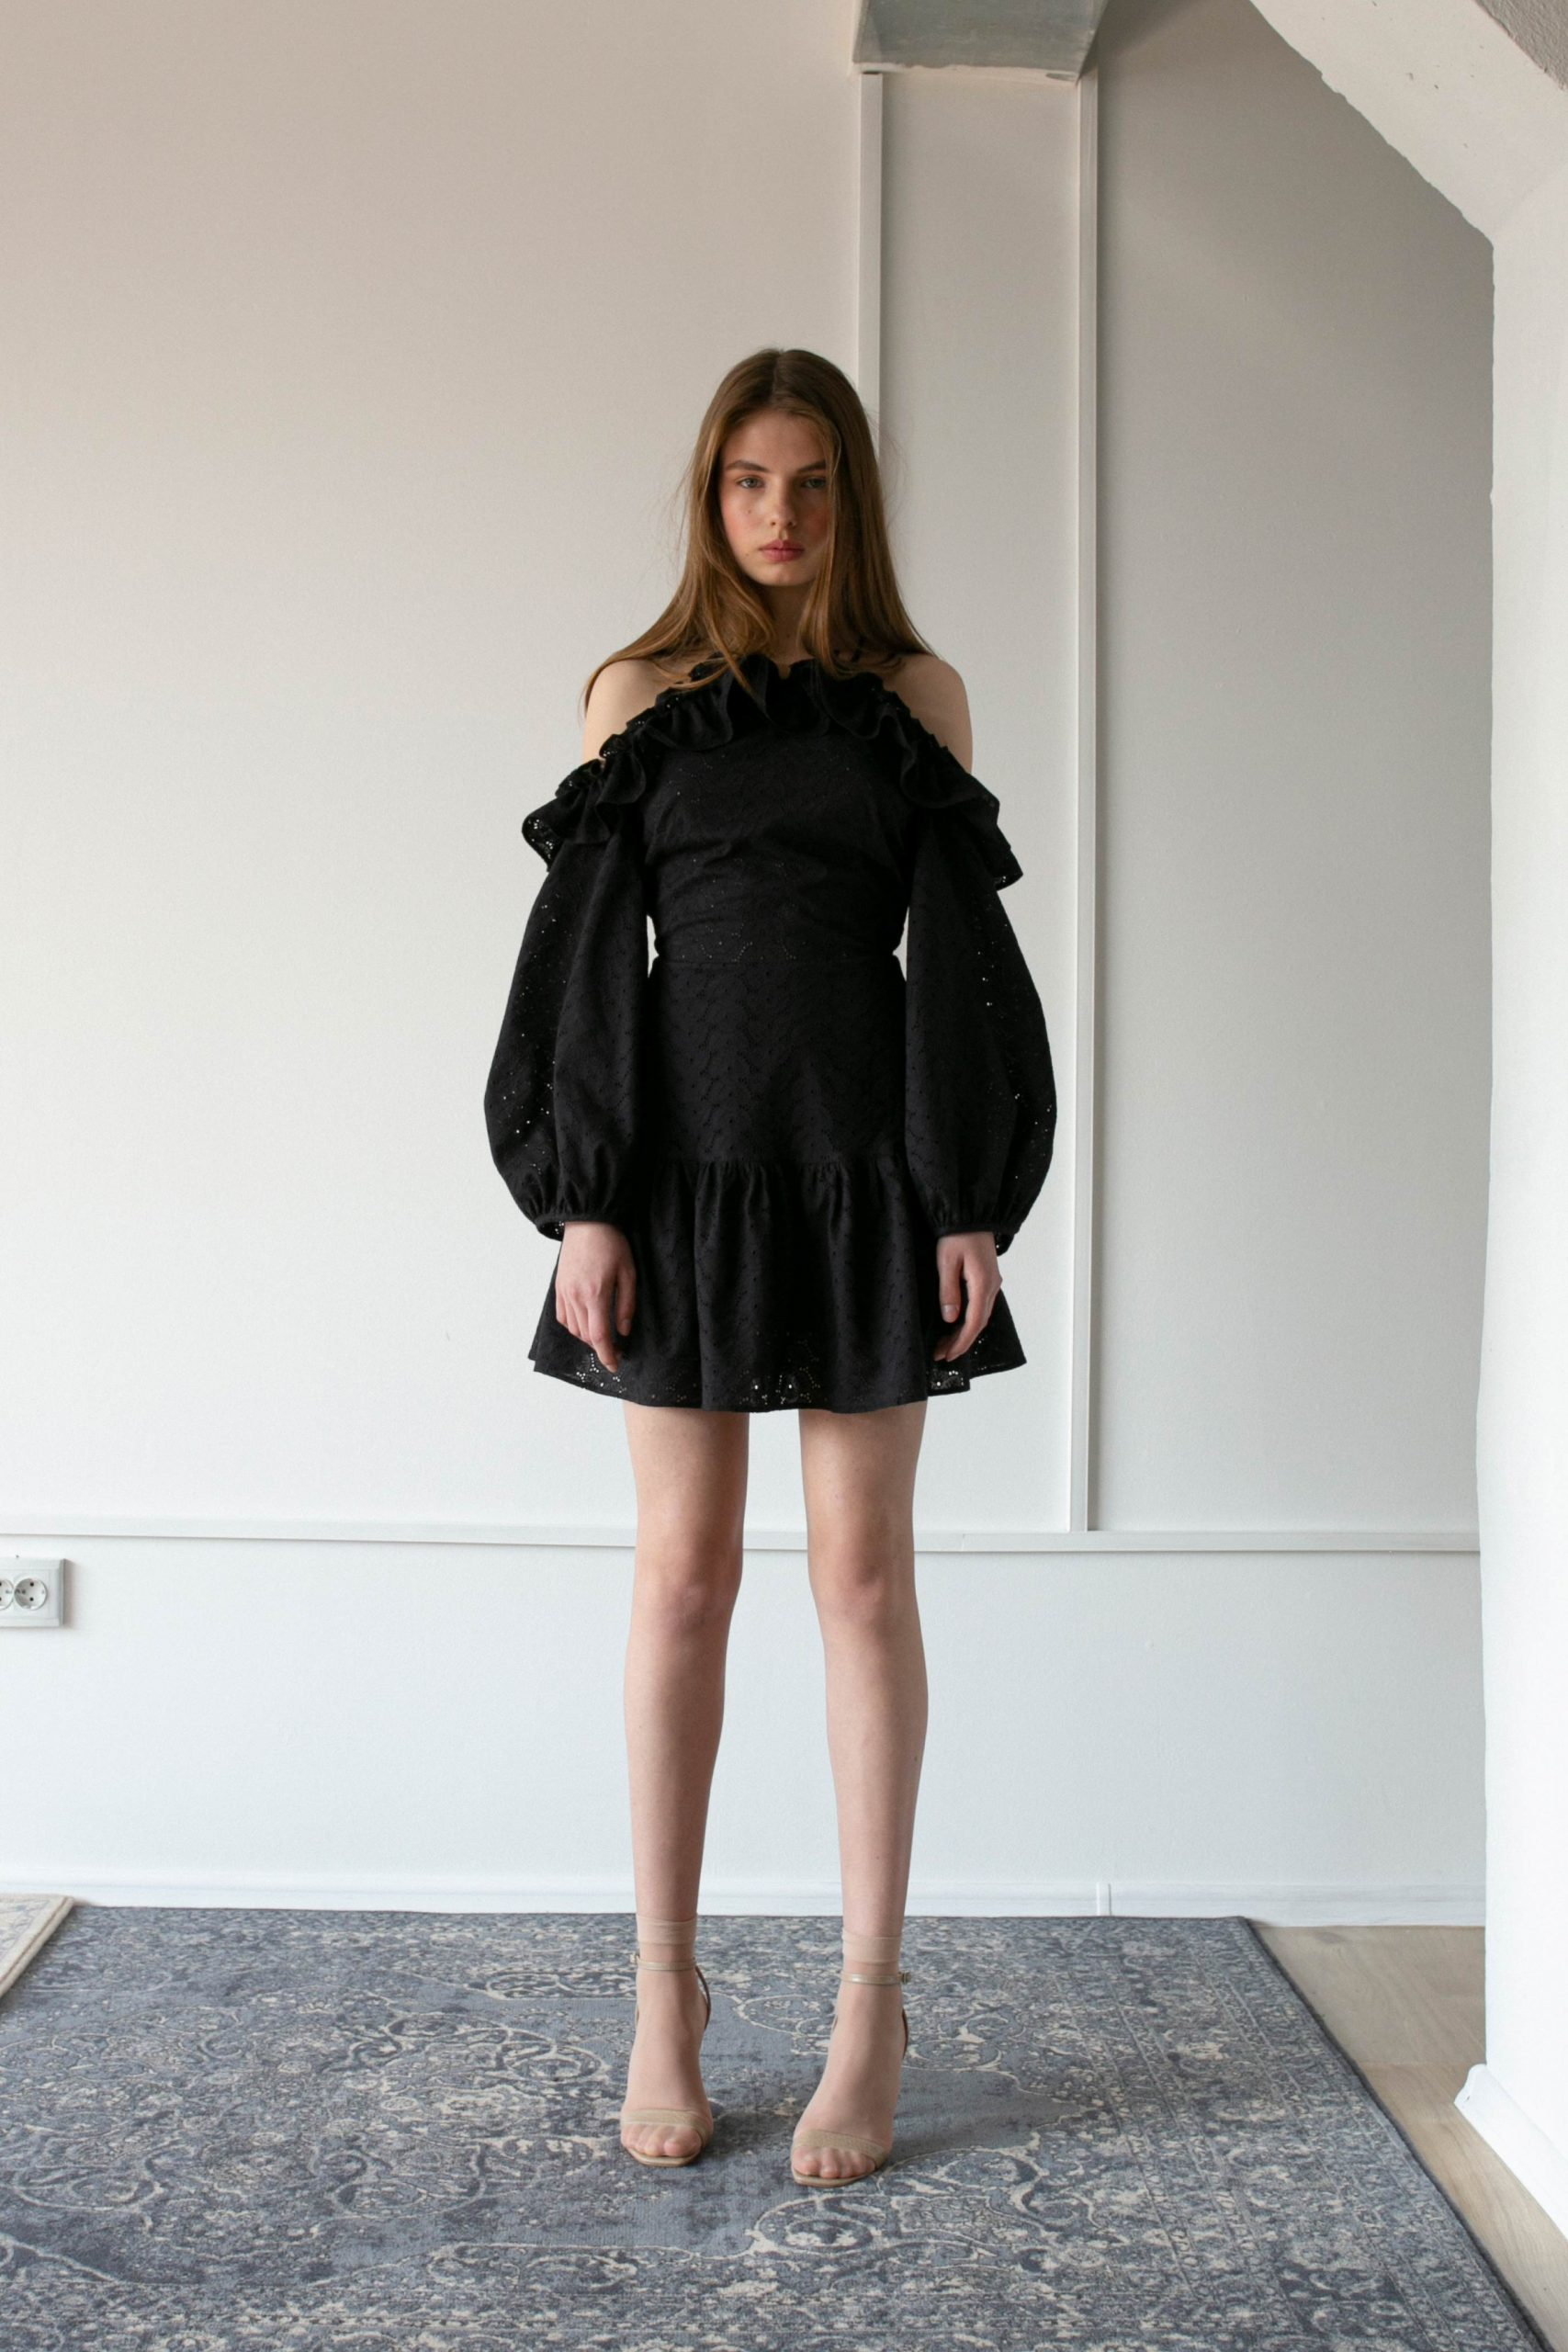 RAQUETTE SS20 - The Afterdark dress